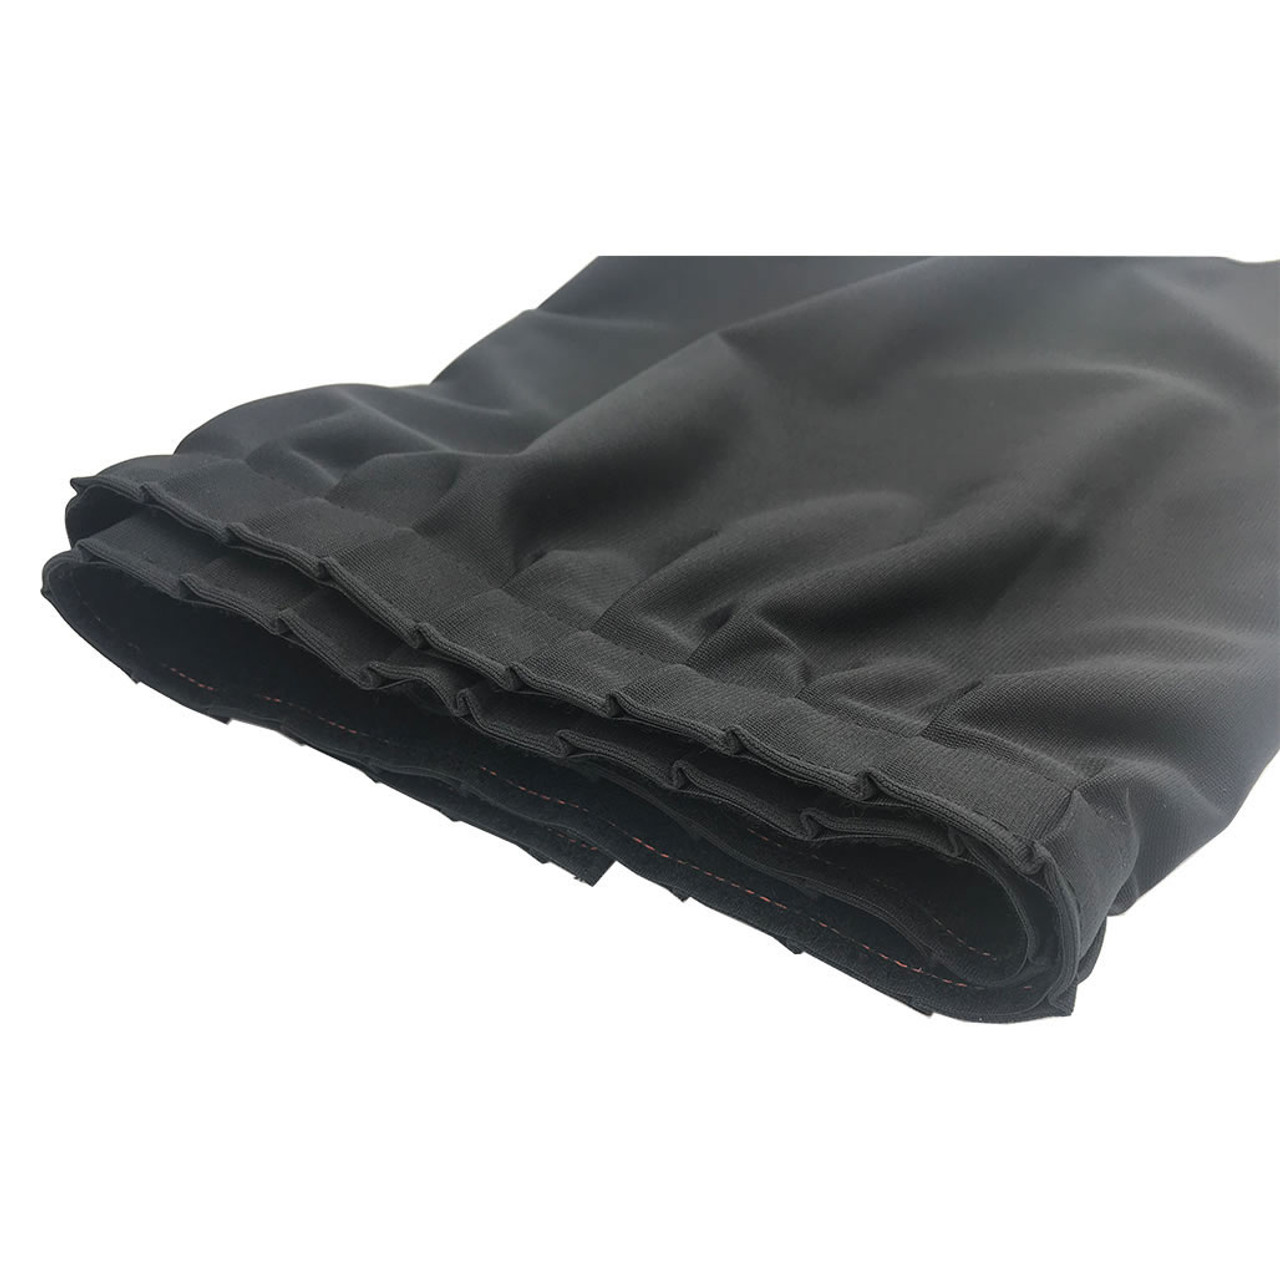 12 Inches High Best Value Black Expo Pleat Polyester Stage Skirting with Velcro. FR Rated. - Close up of Expo/Mini-Accordion Pleat.